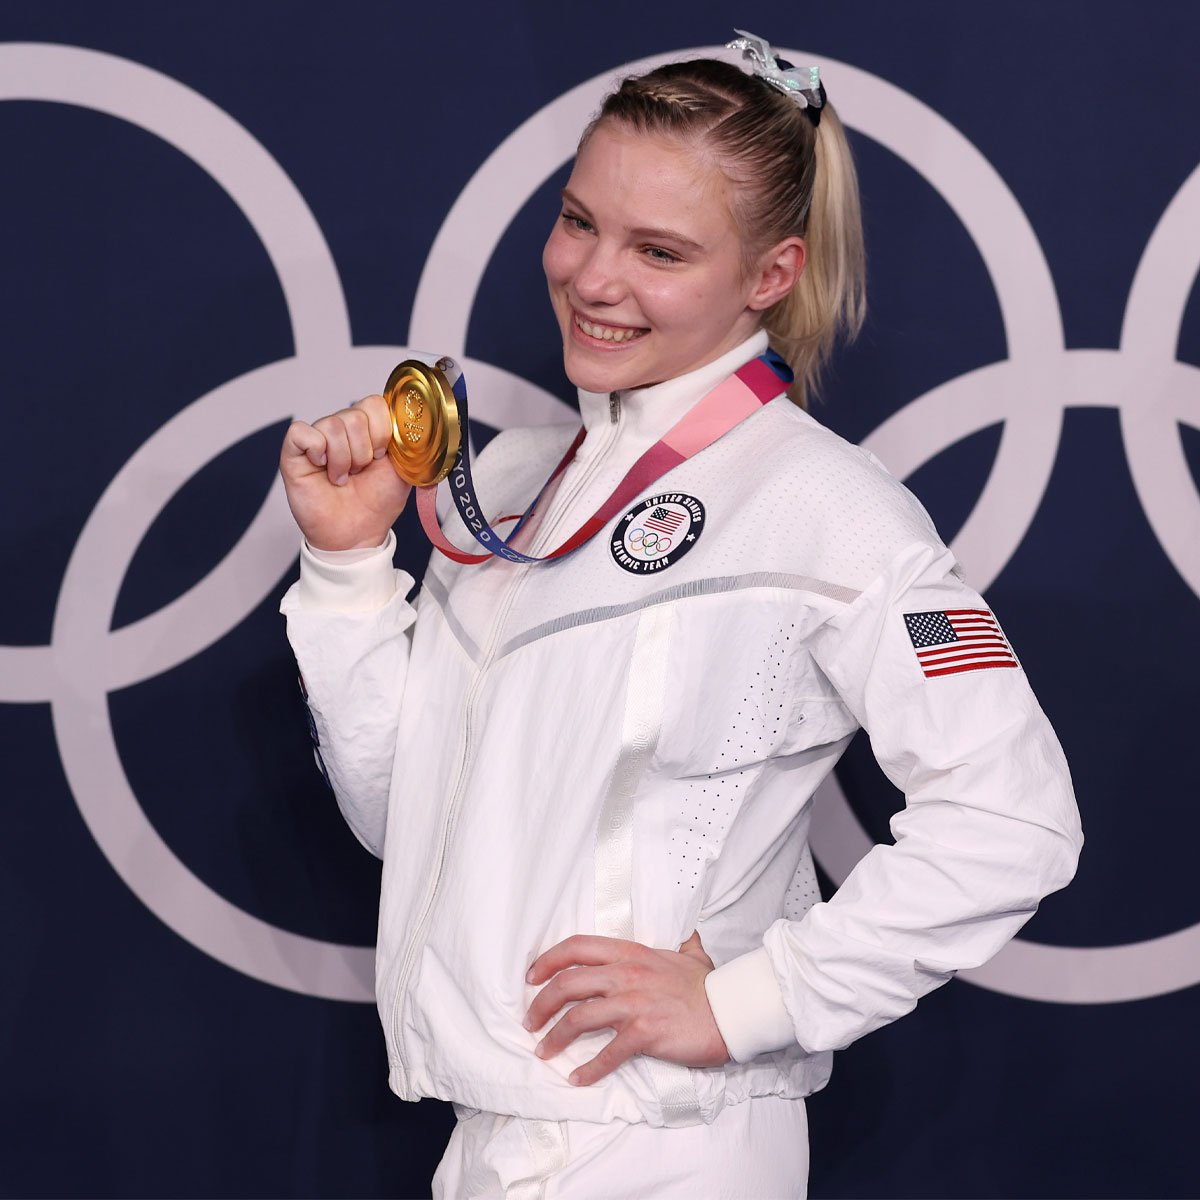 Jade Carey's Jaw-Dropping Gymnastics Floor Routine Wins Olympic Gold